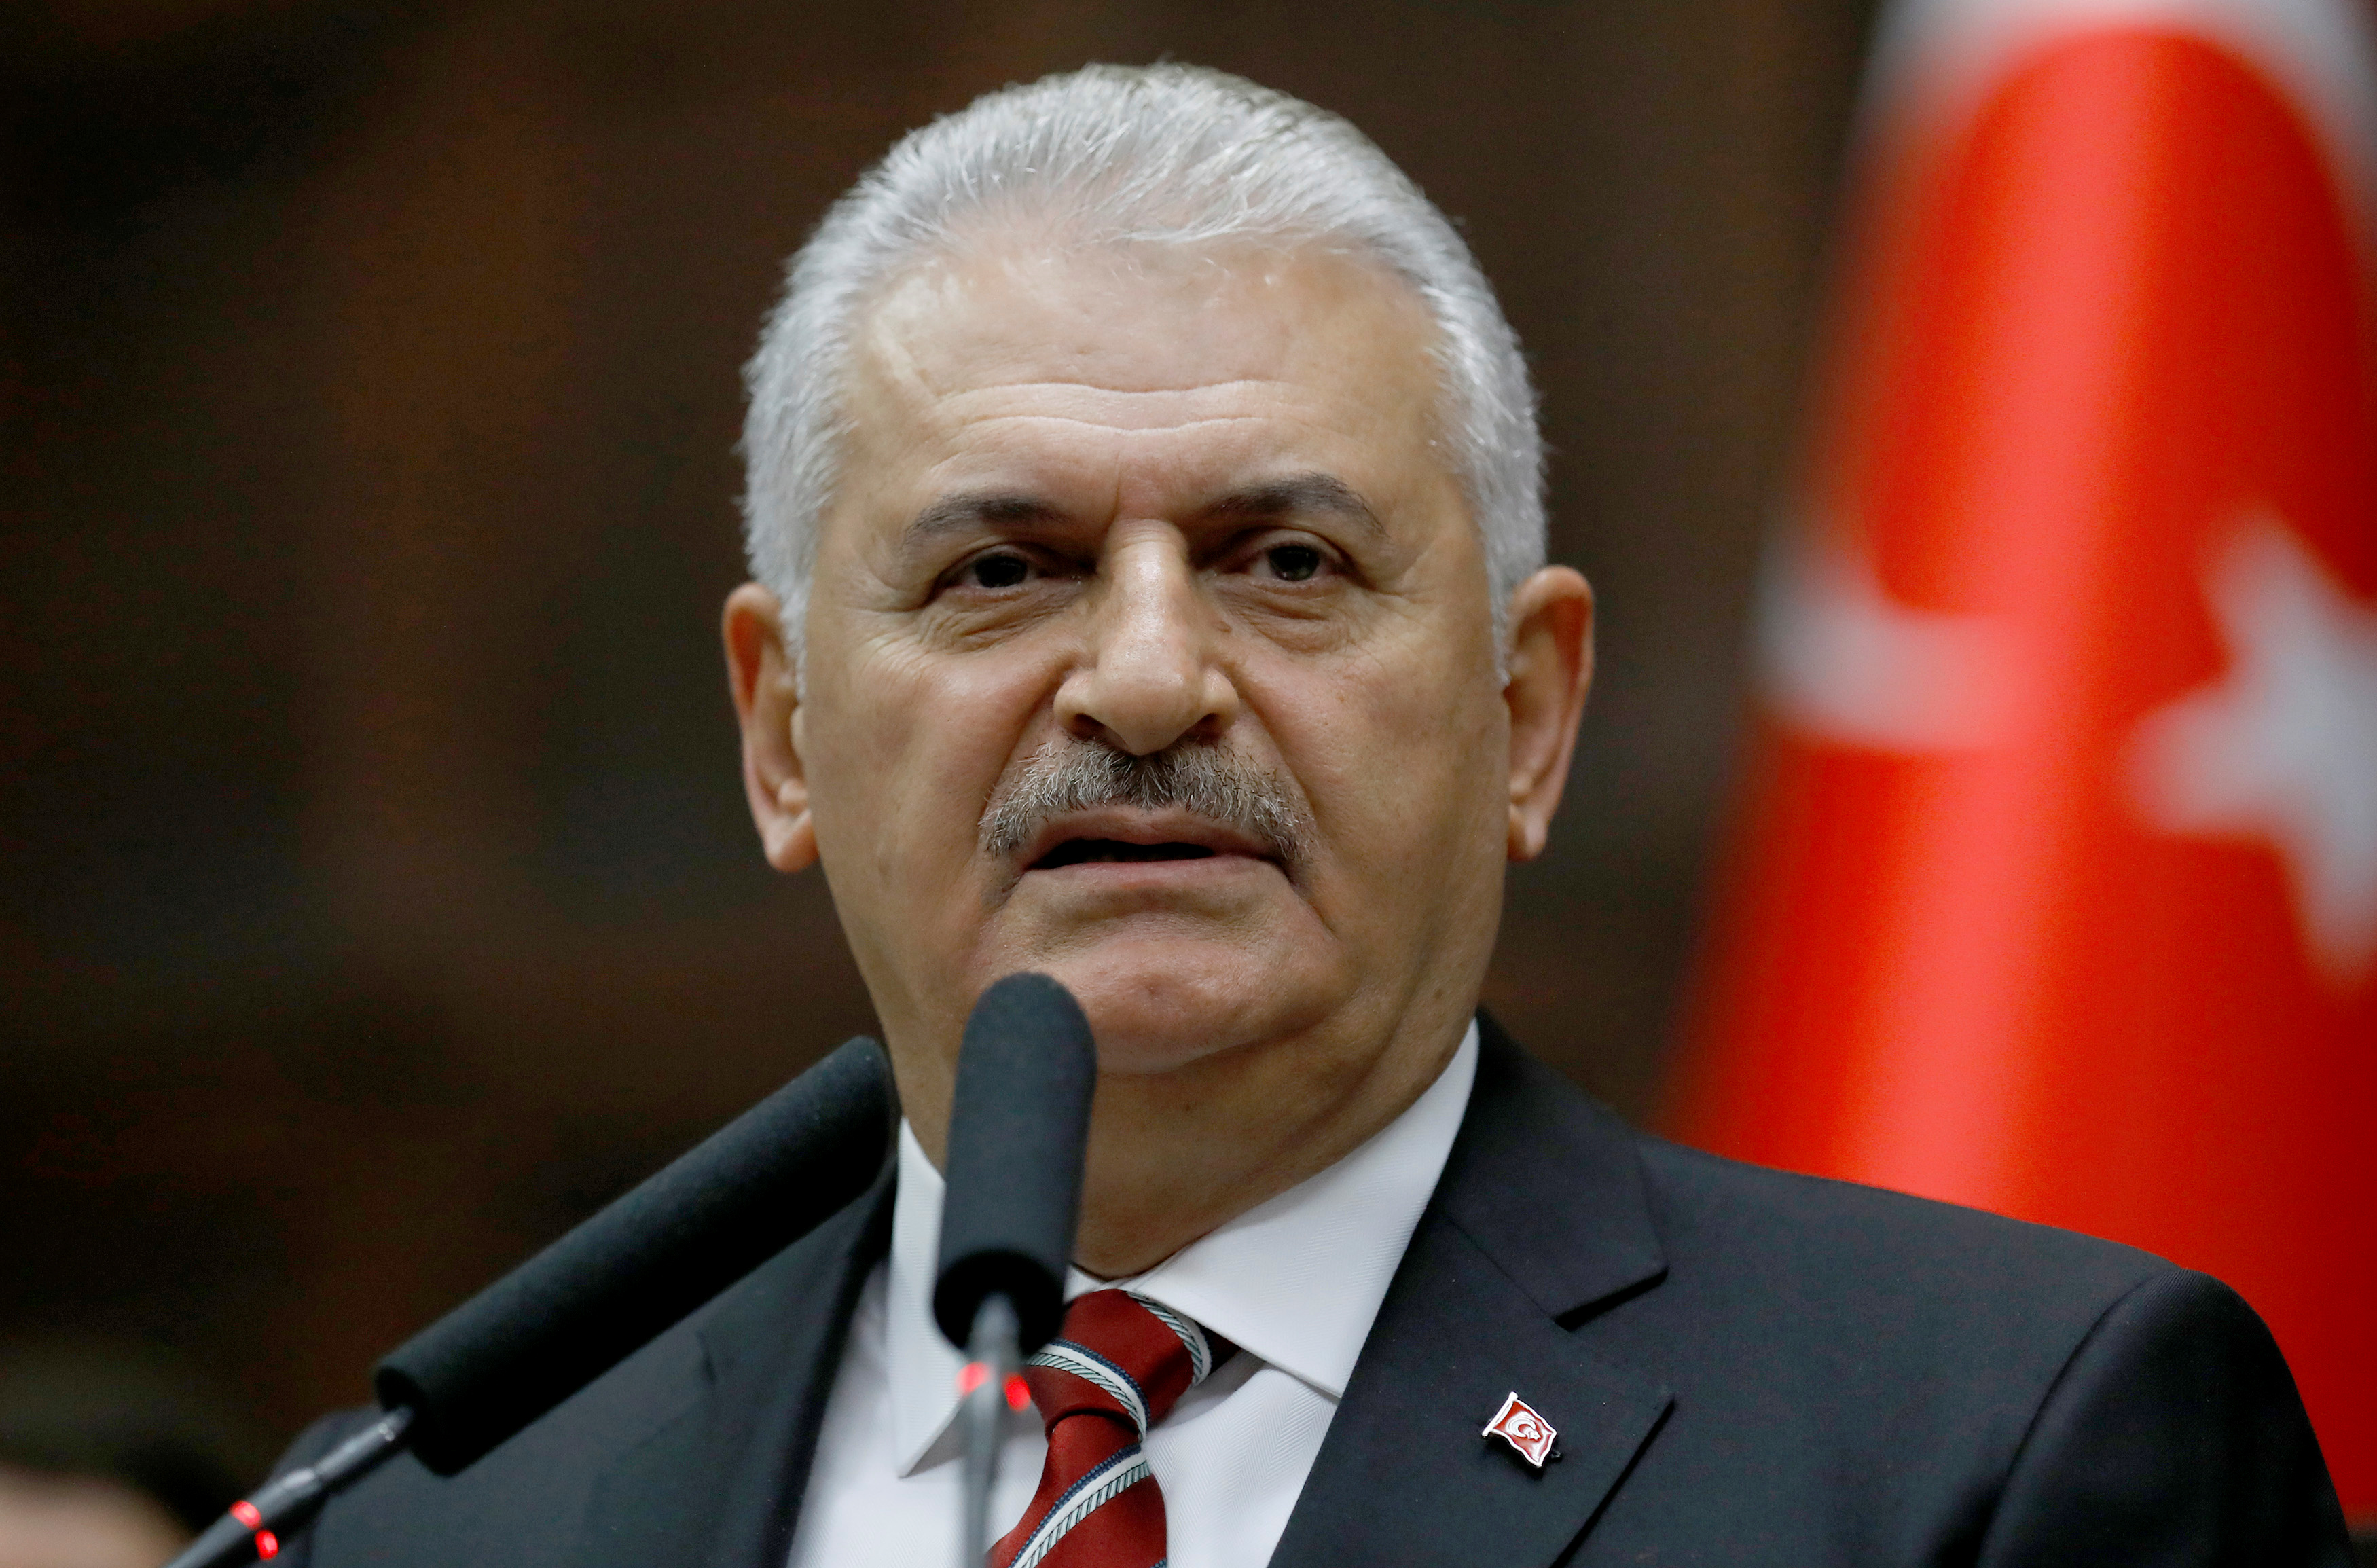 Binali Yildirim addresses members of parliament in Ankara, Turkey, Nov. 8, 2016. The prime minister says the constitutional changes will take one more meeting to iron out the details.